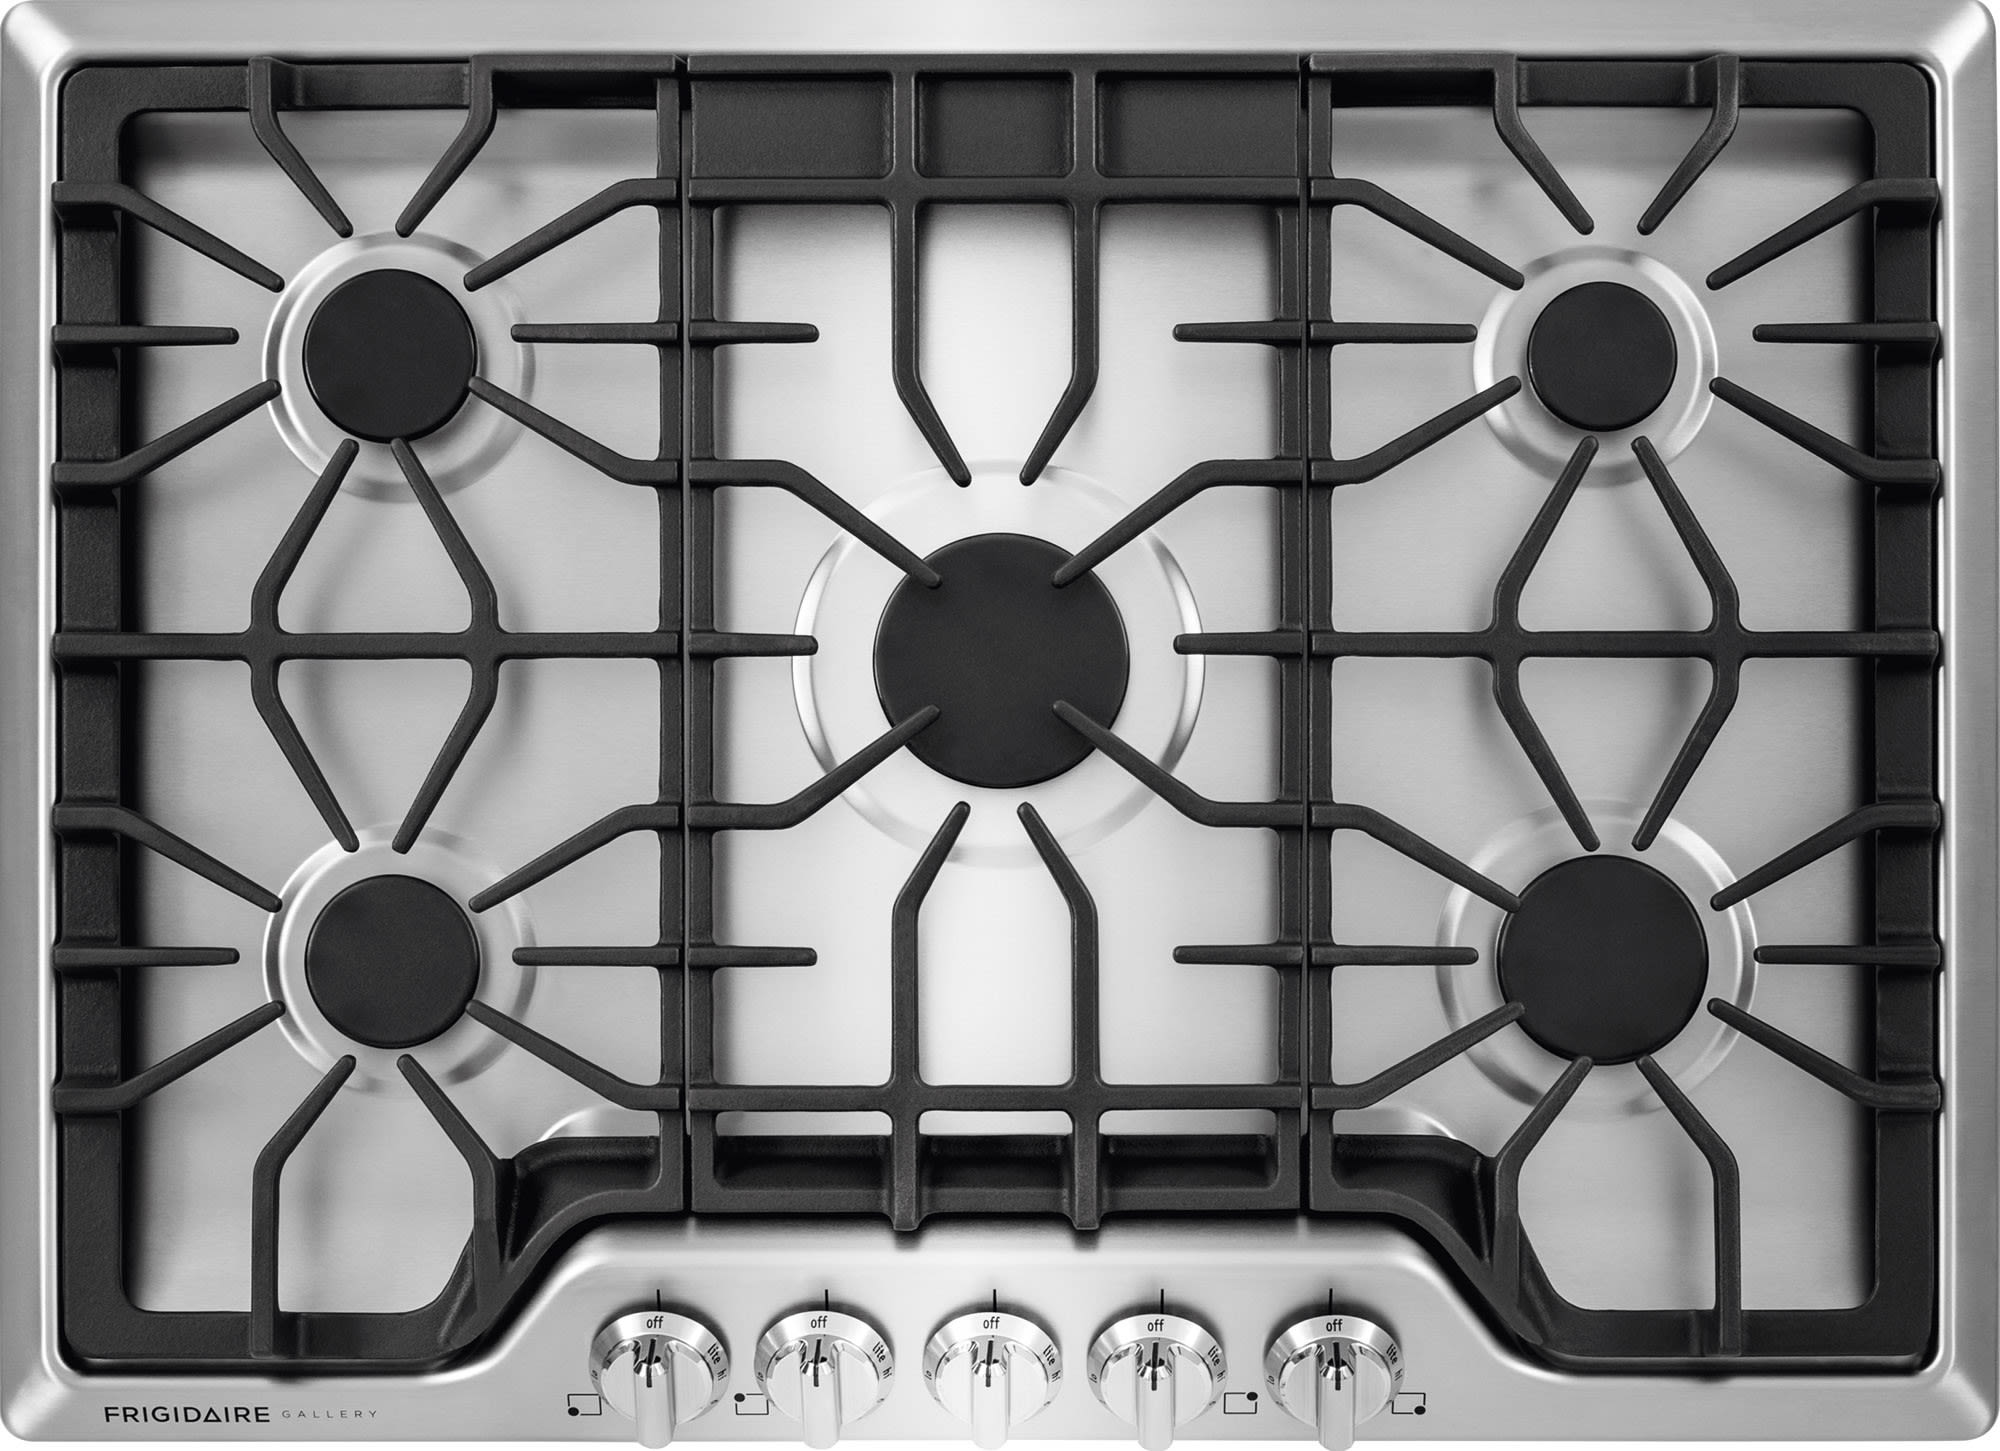 Frigidaire Fgew3065pf 30 Inch Single Electric Wall Oven With True Cooktop Wiring Diagram